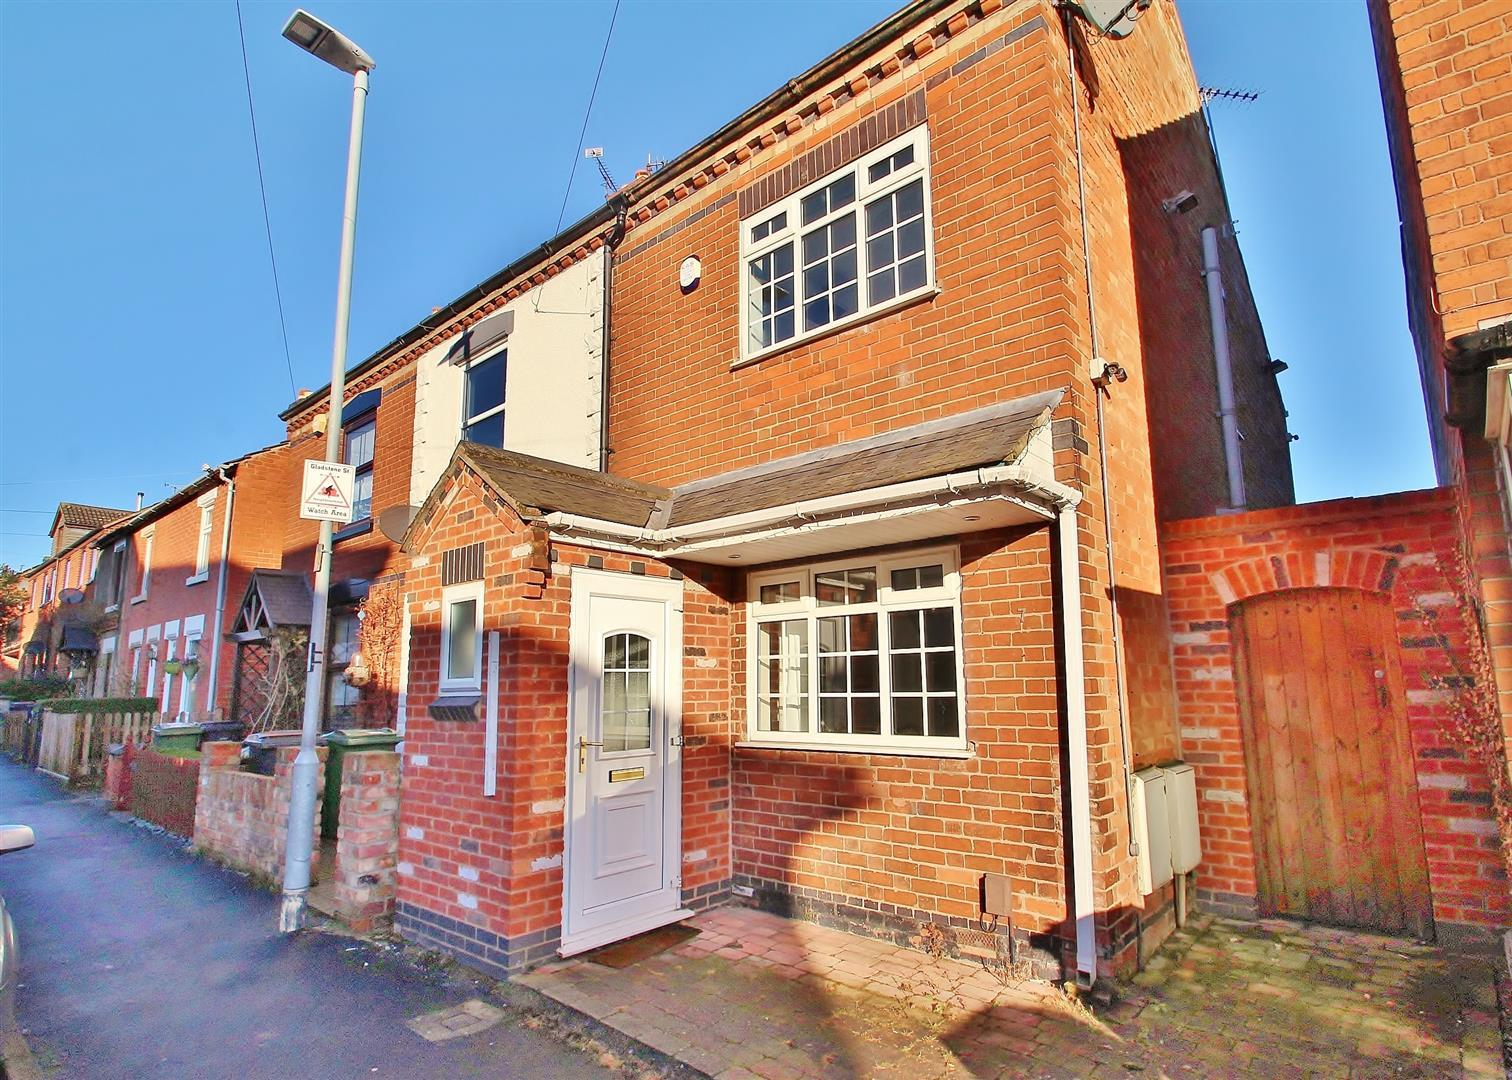 2 Bedrooms Property for sale in Gladstone Street, Anstey, Leicestershire